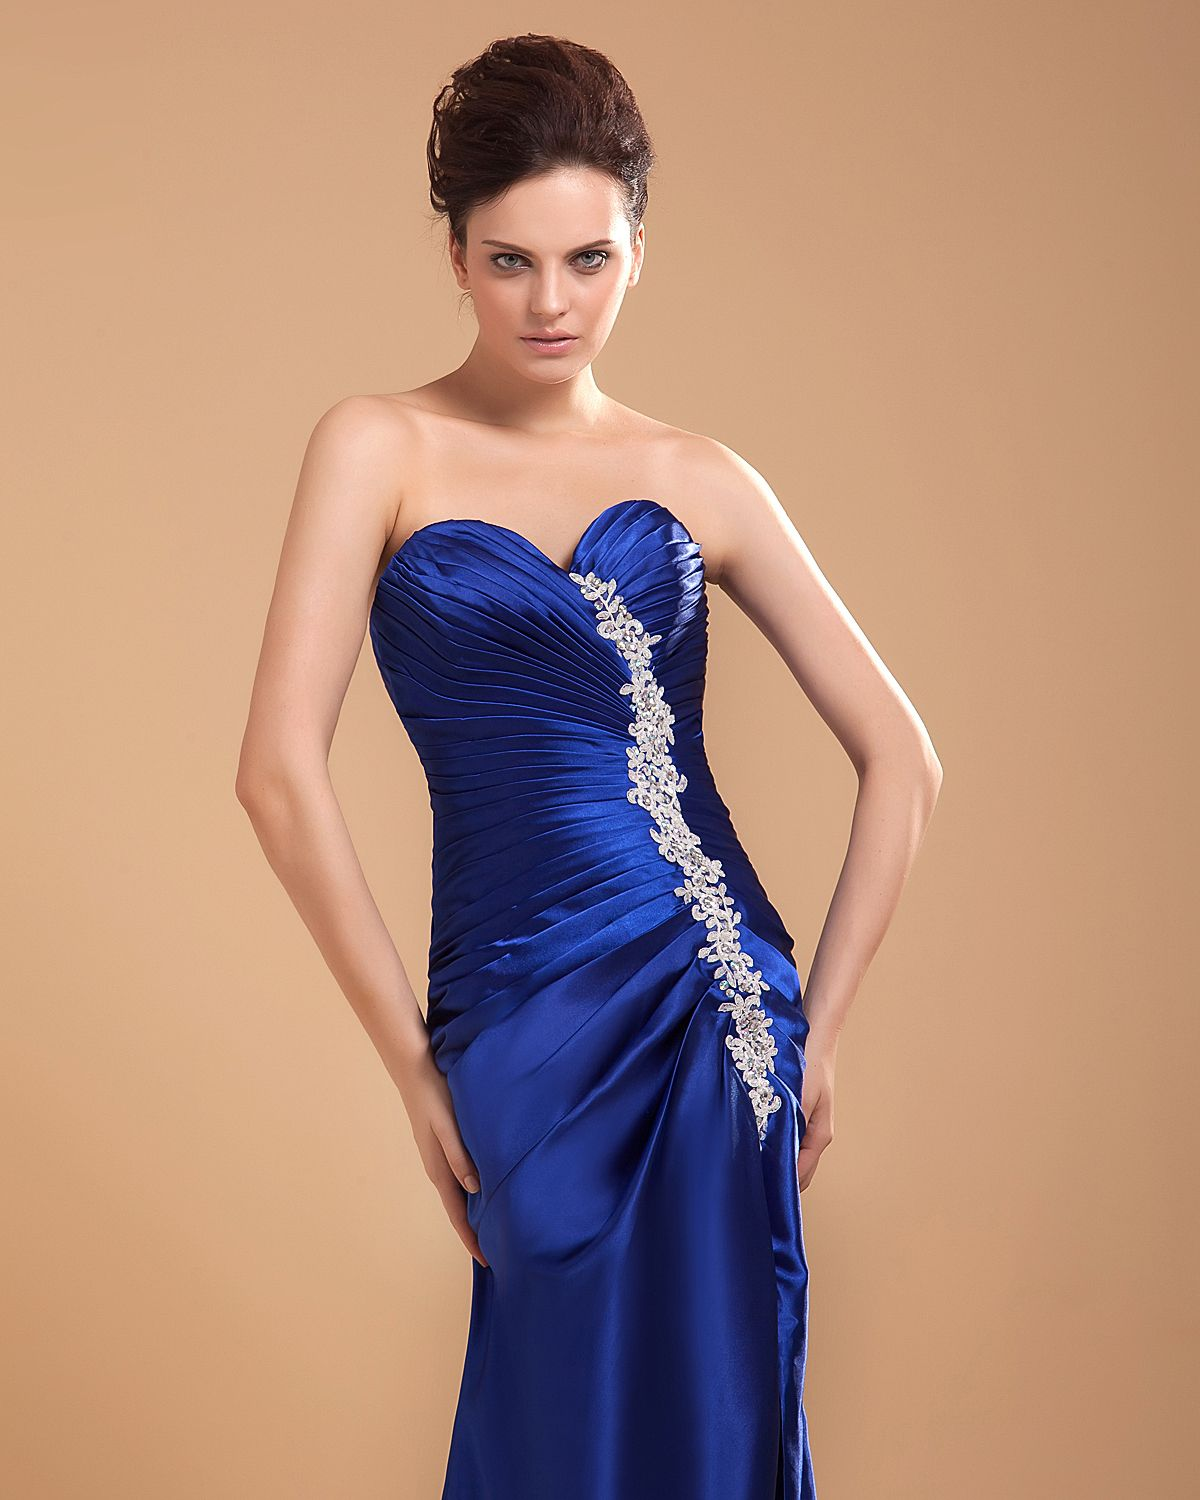 Her dress is amazing!! | Royal blue bridesmaid dresses ...